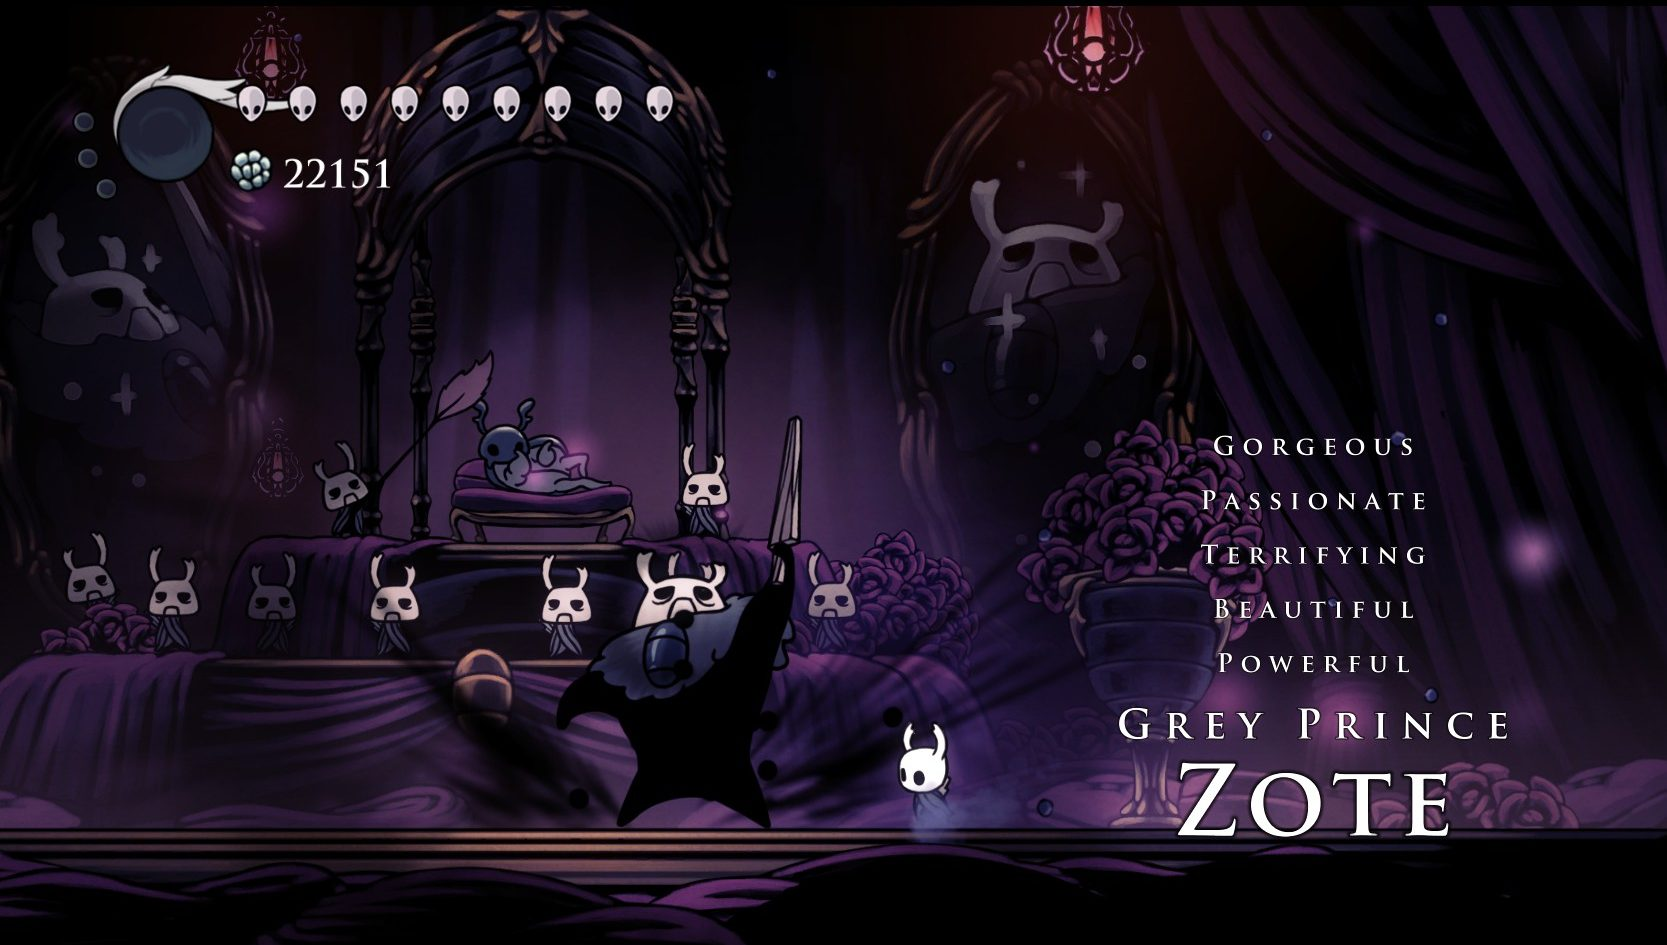 Imagem do mestre Grey Prince Zote de Hidden Dreams, DLC de Hollow Knight, Metroidvania da Team Cherry